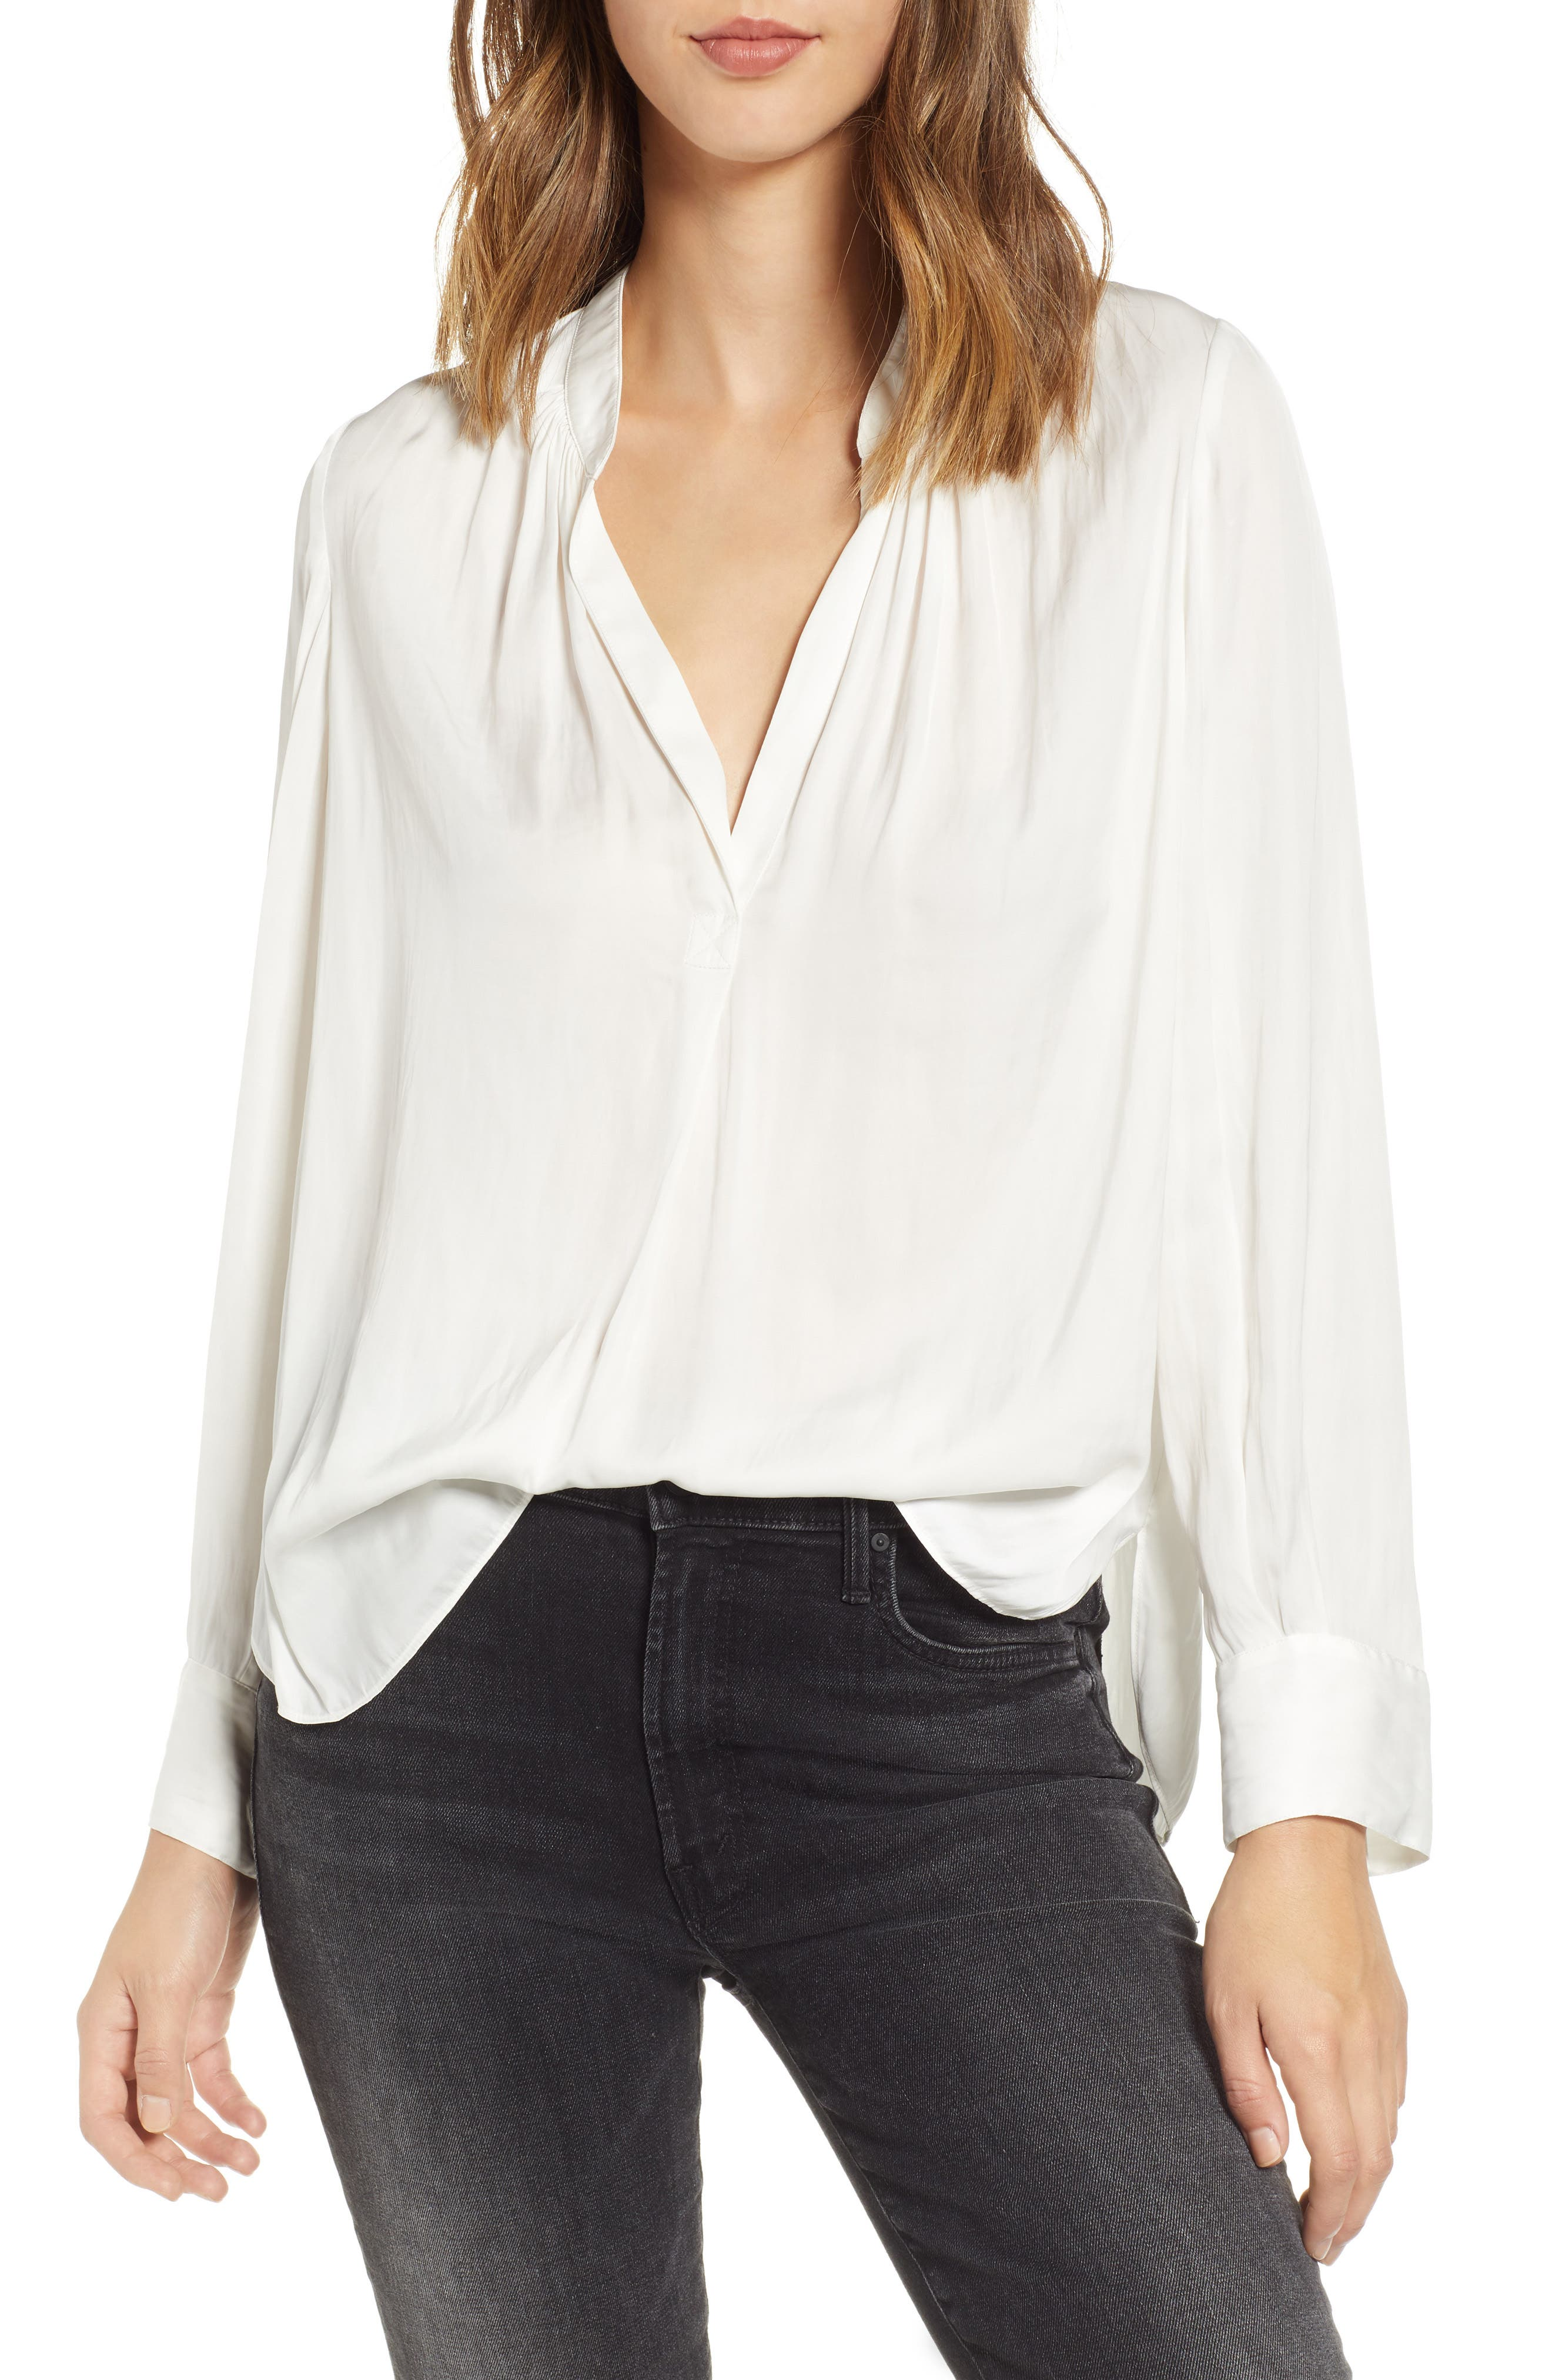 Tink Blouse,                         Main,                         color, BLANC